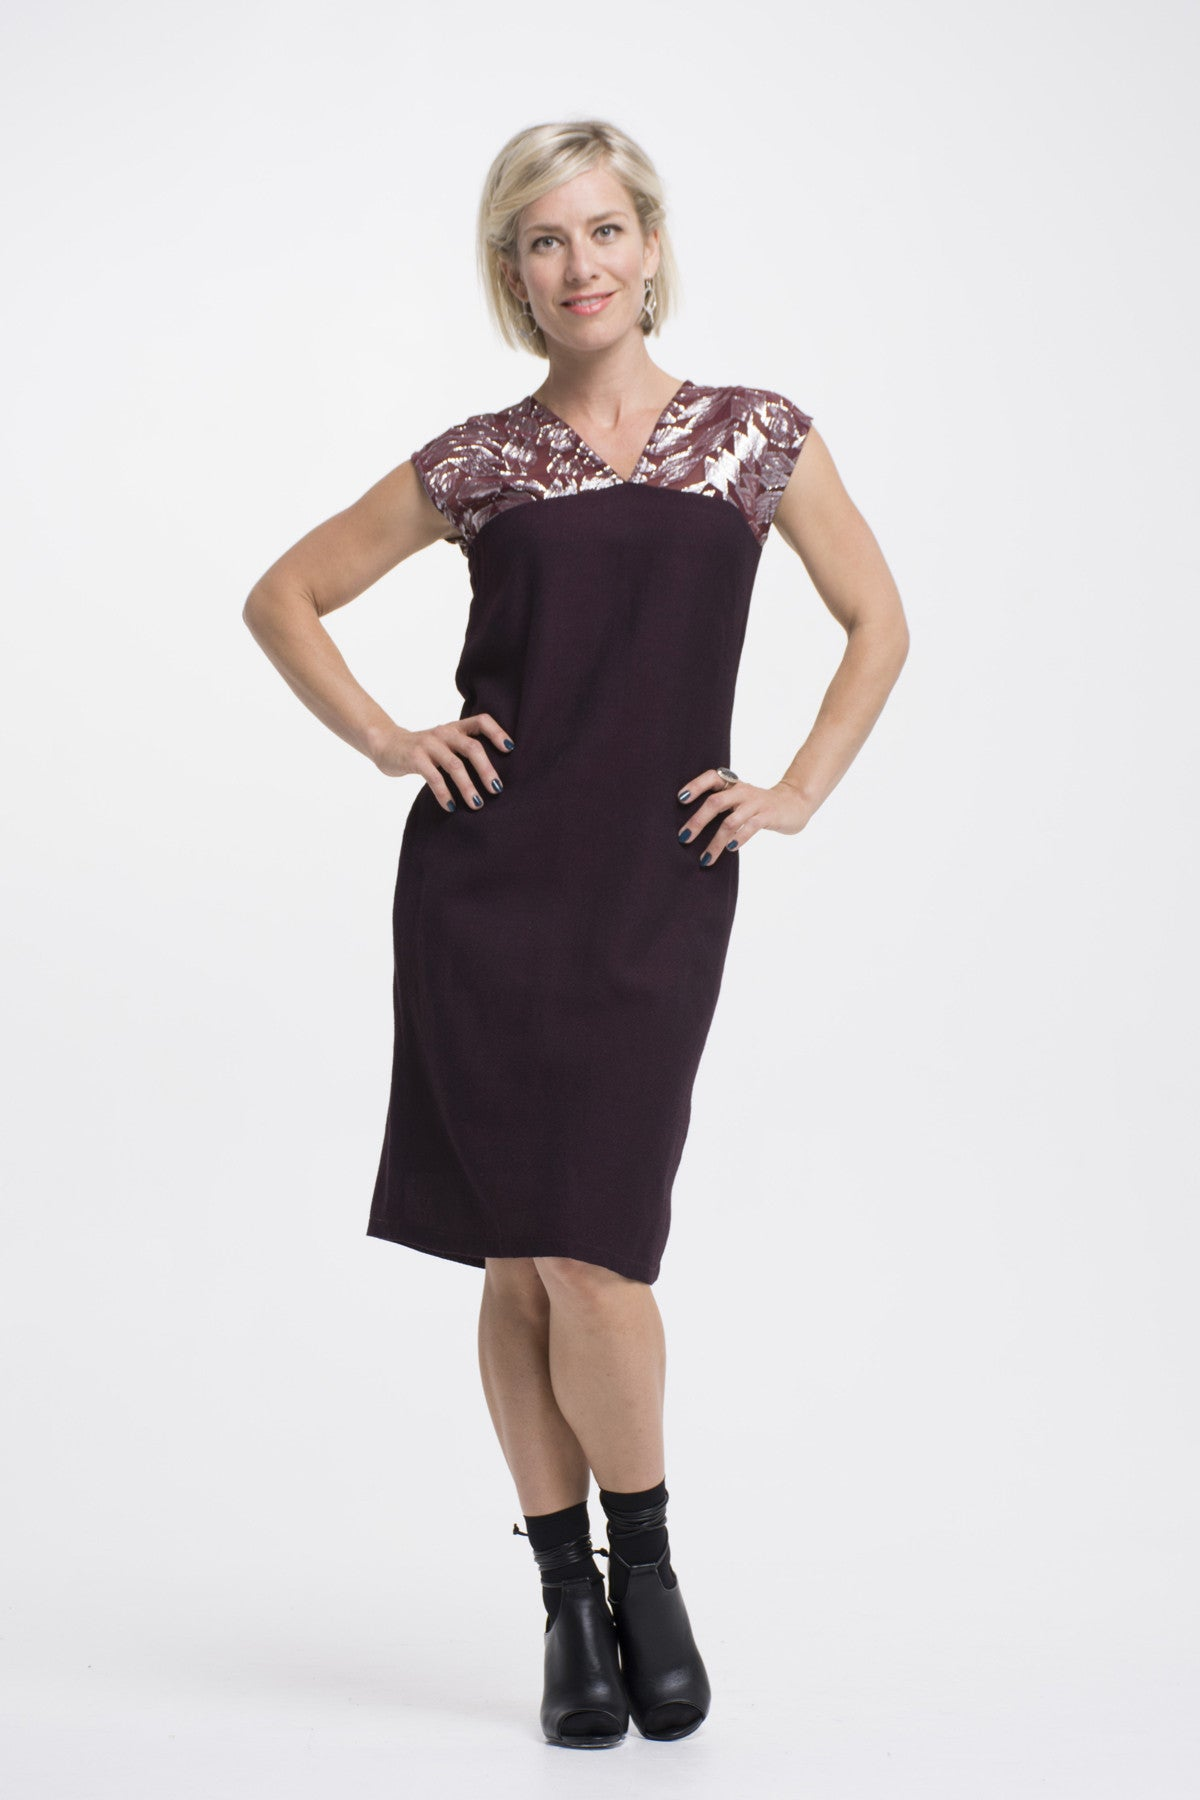 Vesta Soprano Dress - Ruby and Silver was $198 now $188